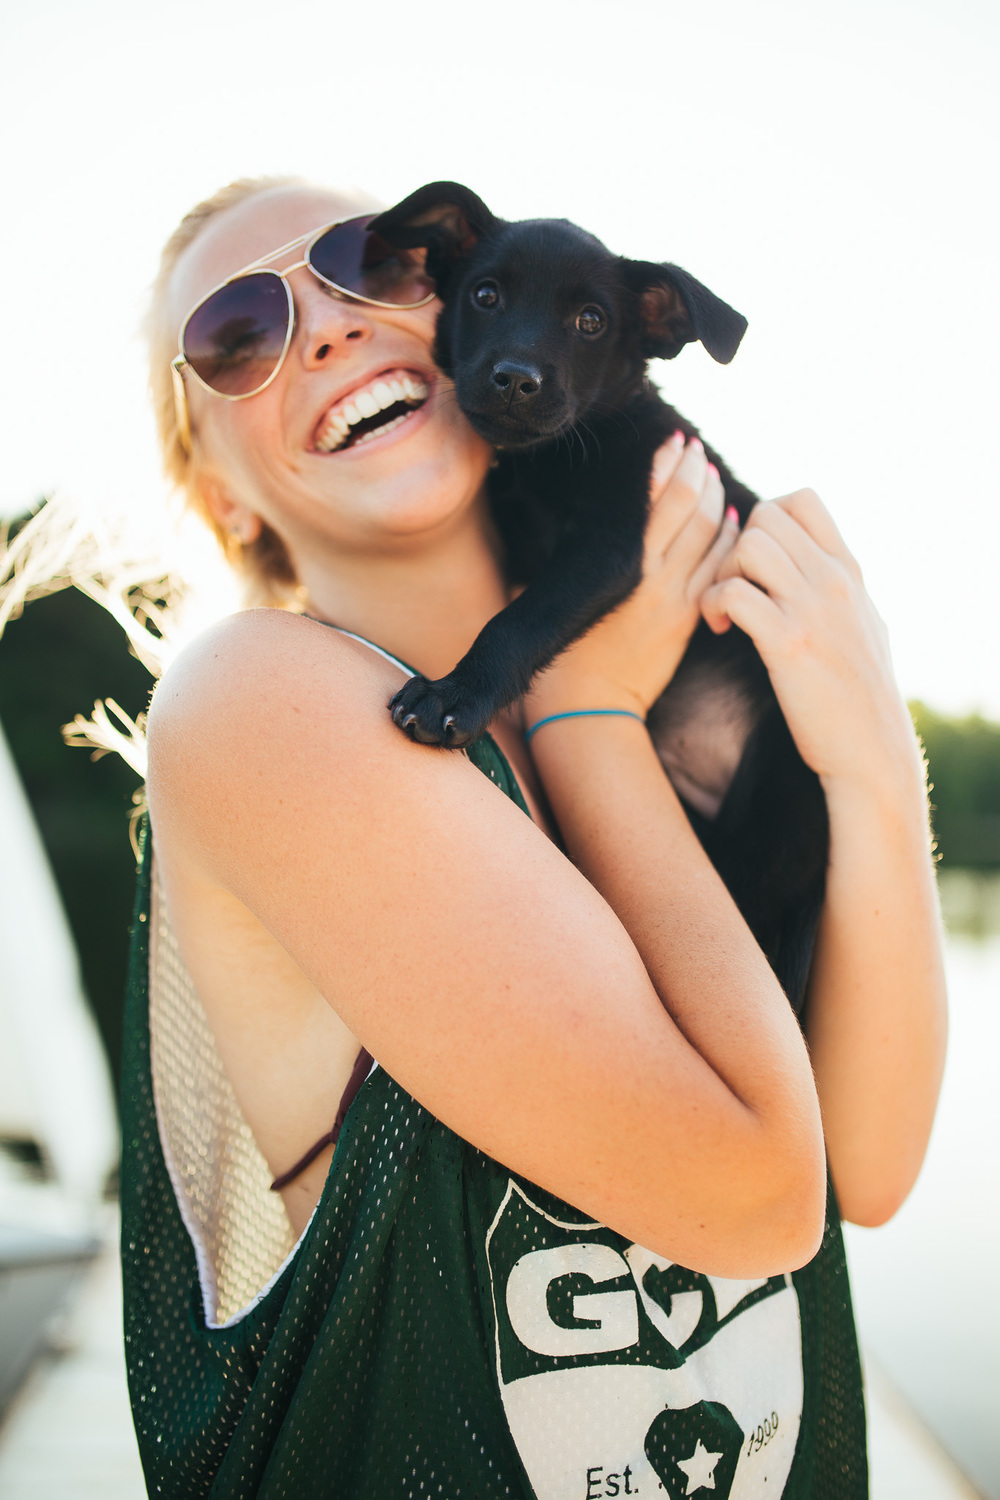 Sailing_With_Friends_Cute_Puppy-27.JPG